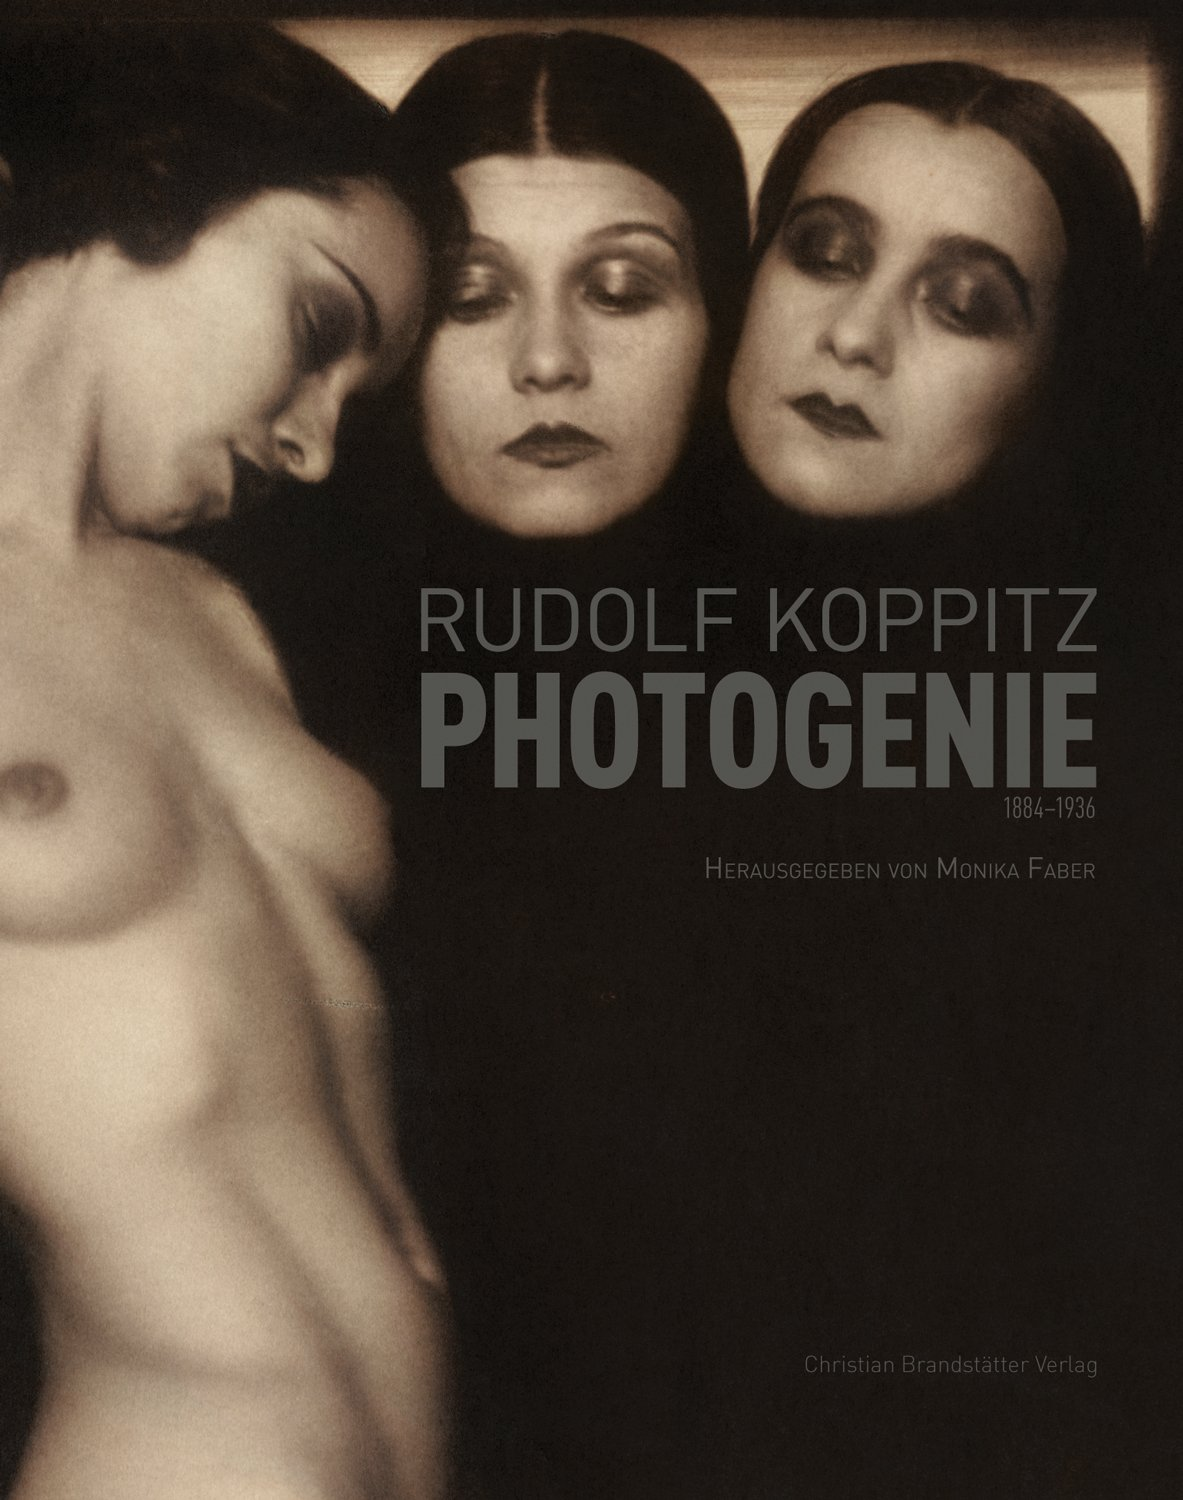 Rudolf Koppitz - Photogenie 1884-1936